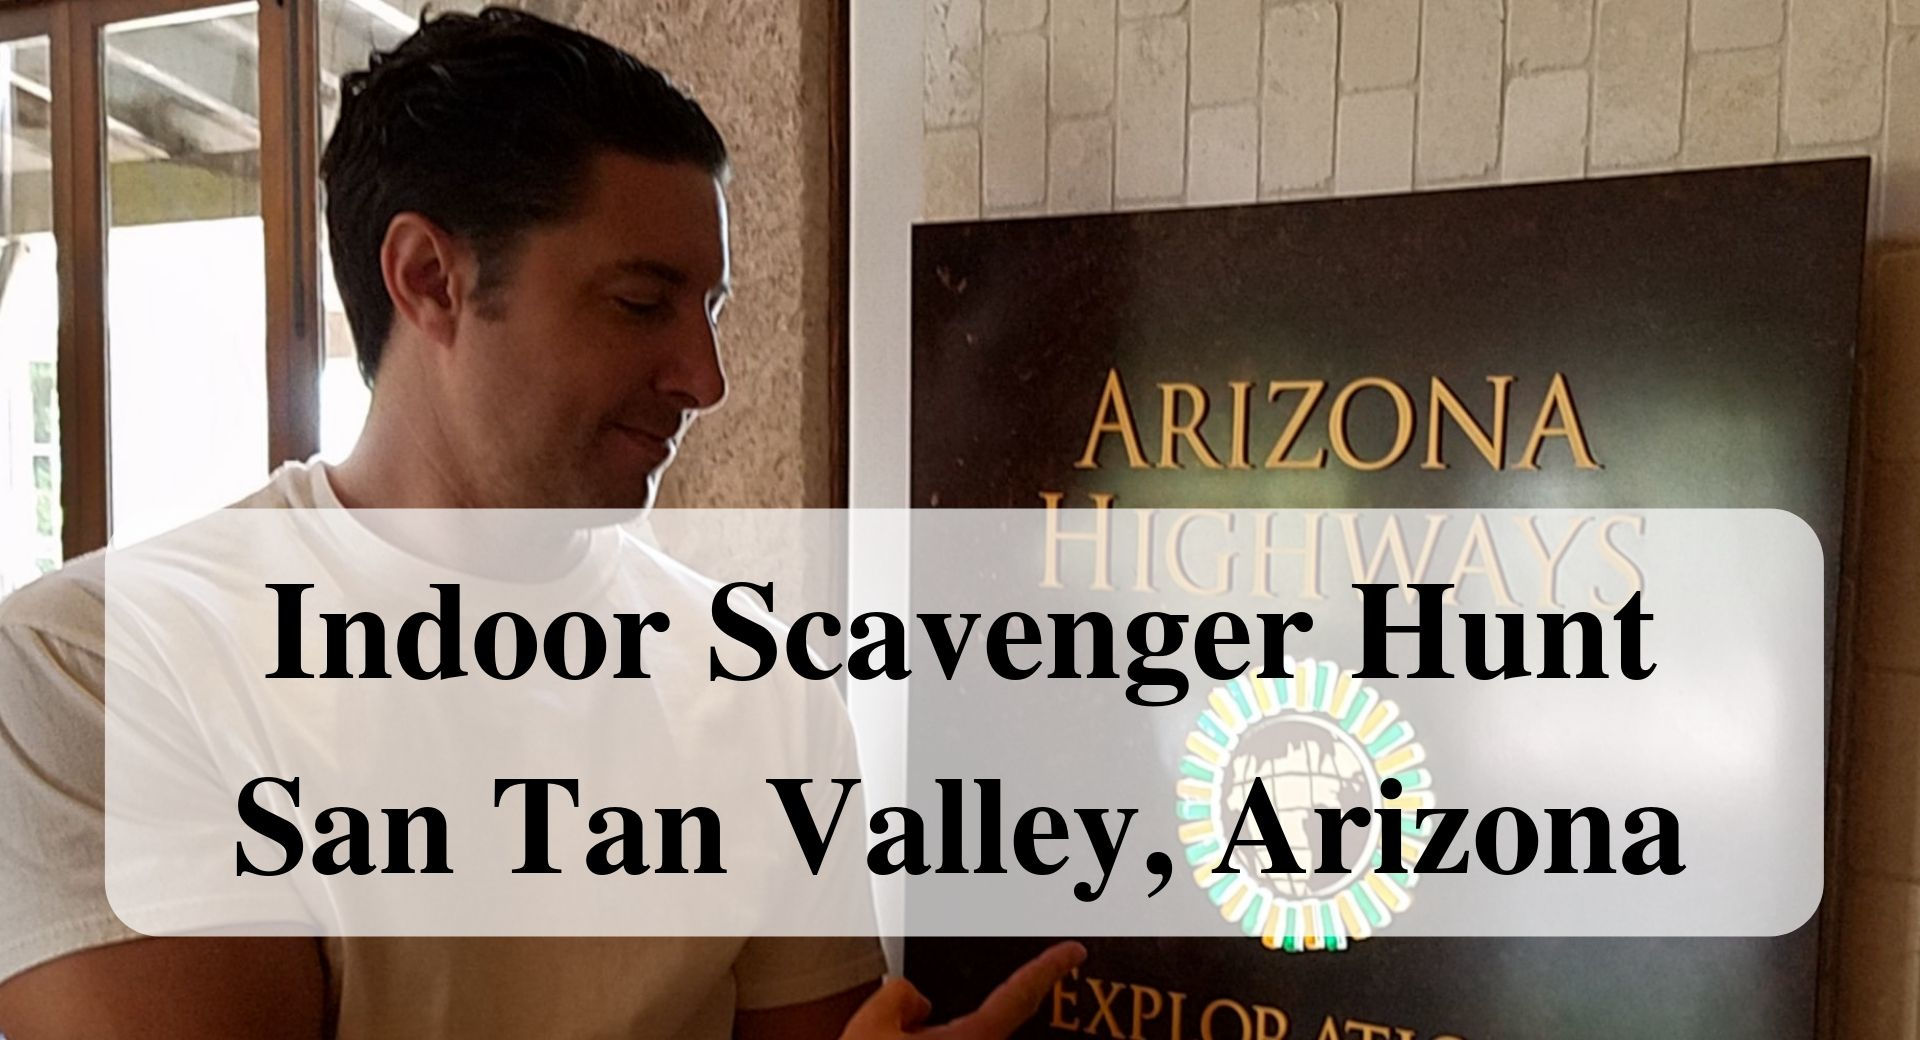 Indoor Scavenger Hunt San Tan Valley, Arizona Main